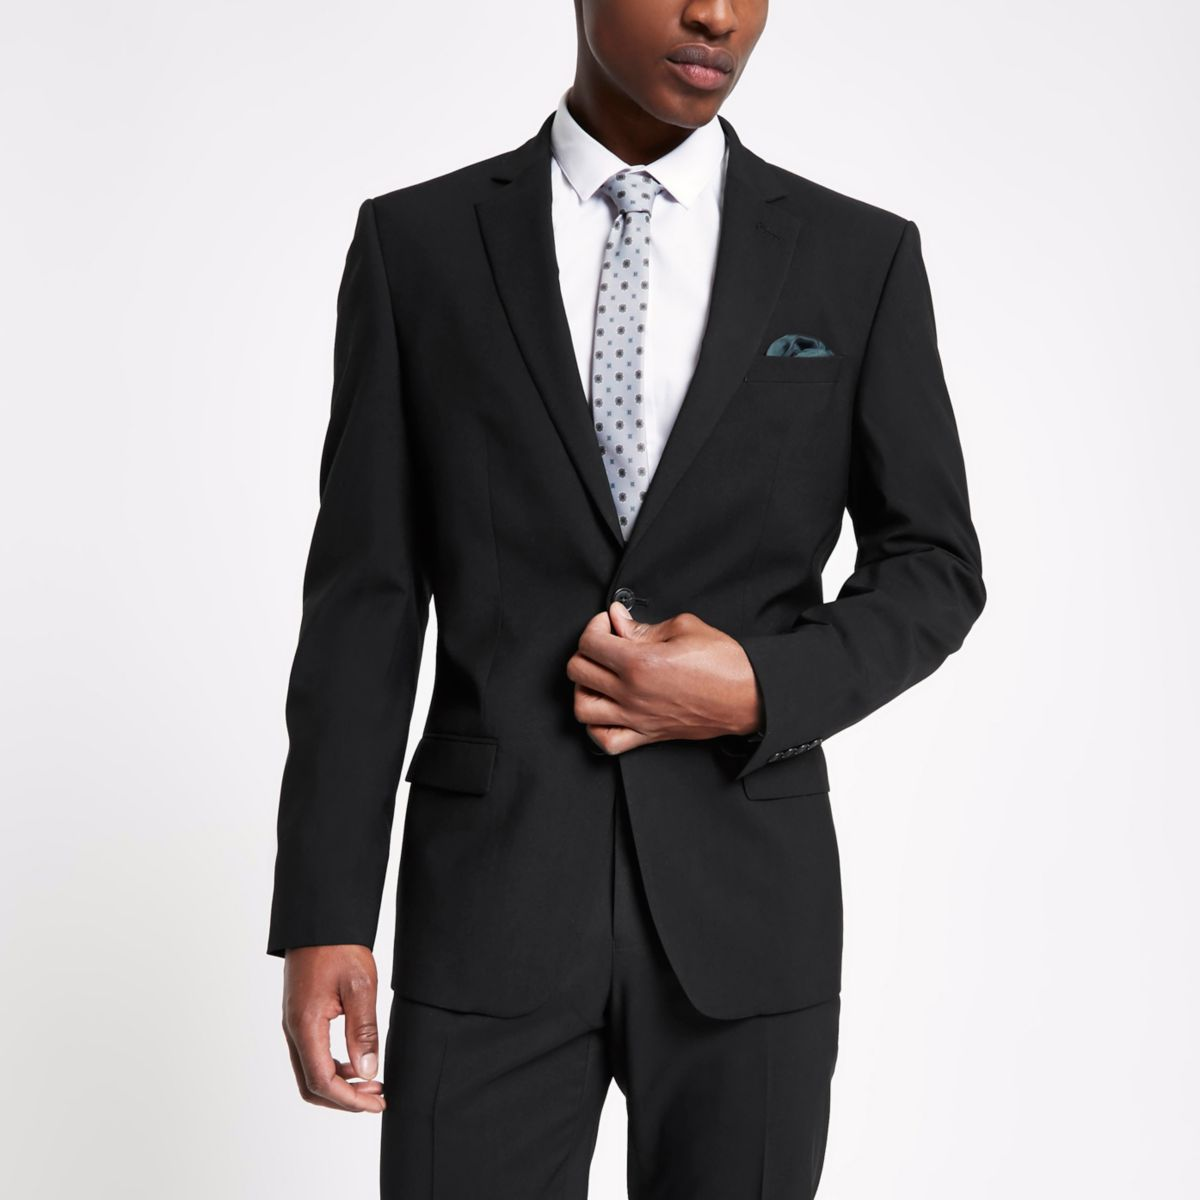 Black tailored suit jacket - Suit Jackets - Suits